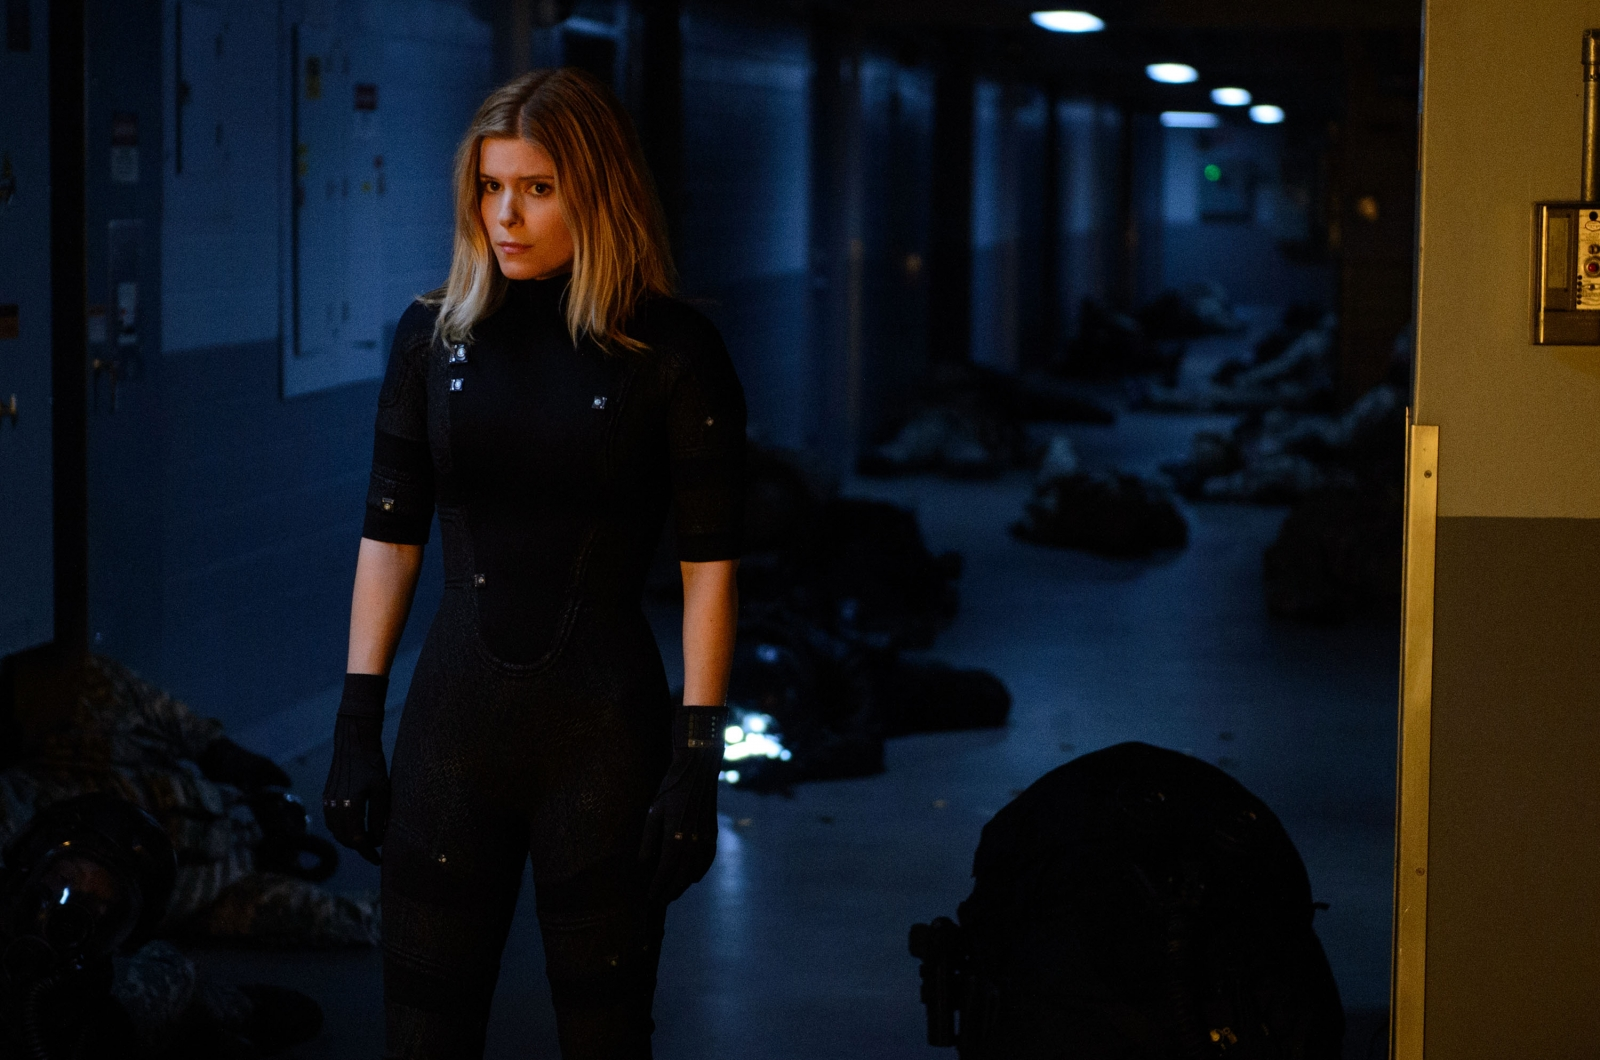 Kate Mara Sue Storm in Fantastic Four